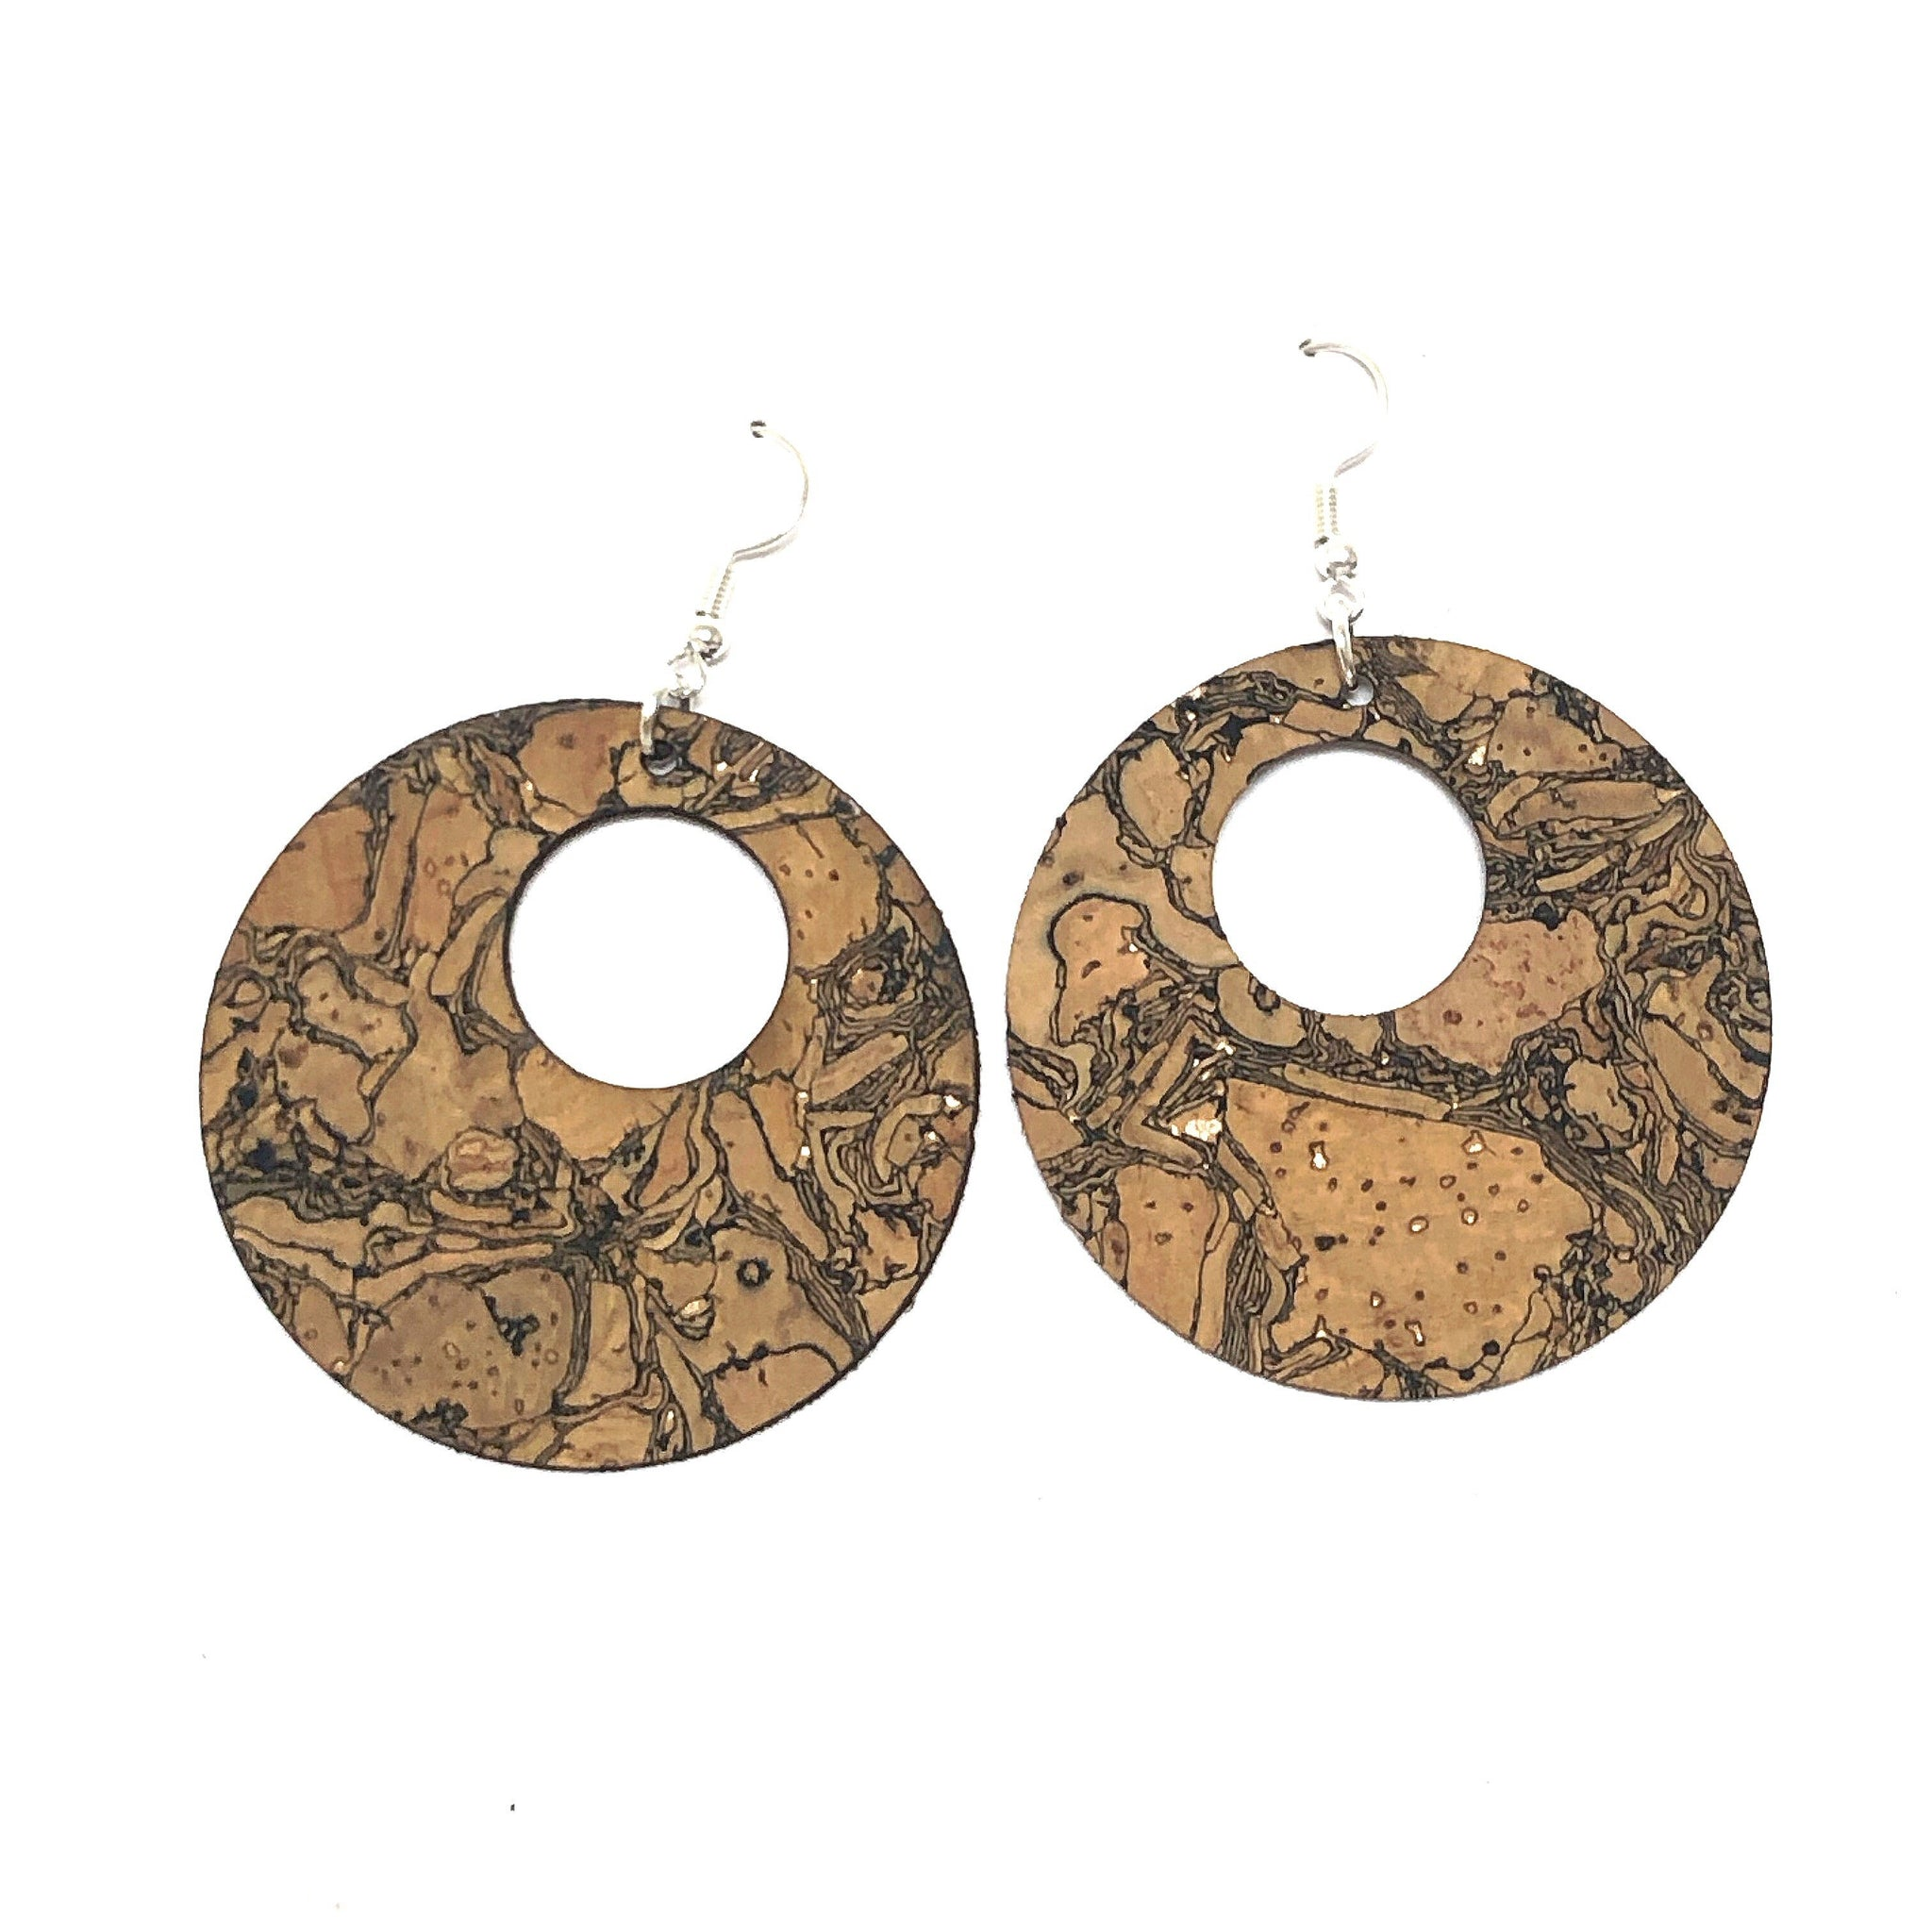 Cork Double Circle Earrings - Both Sides Cork